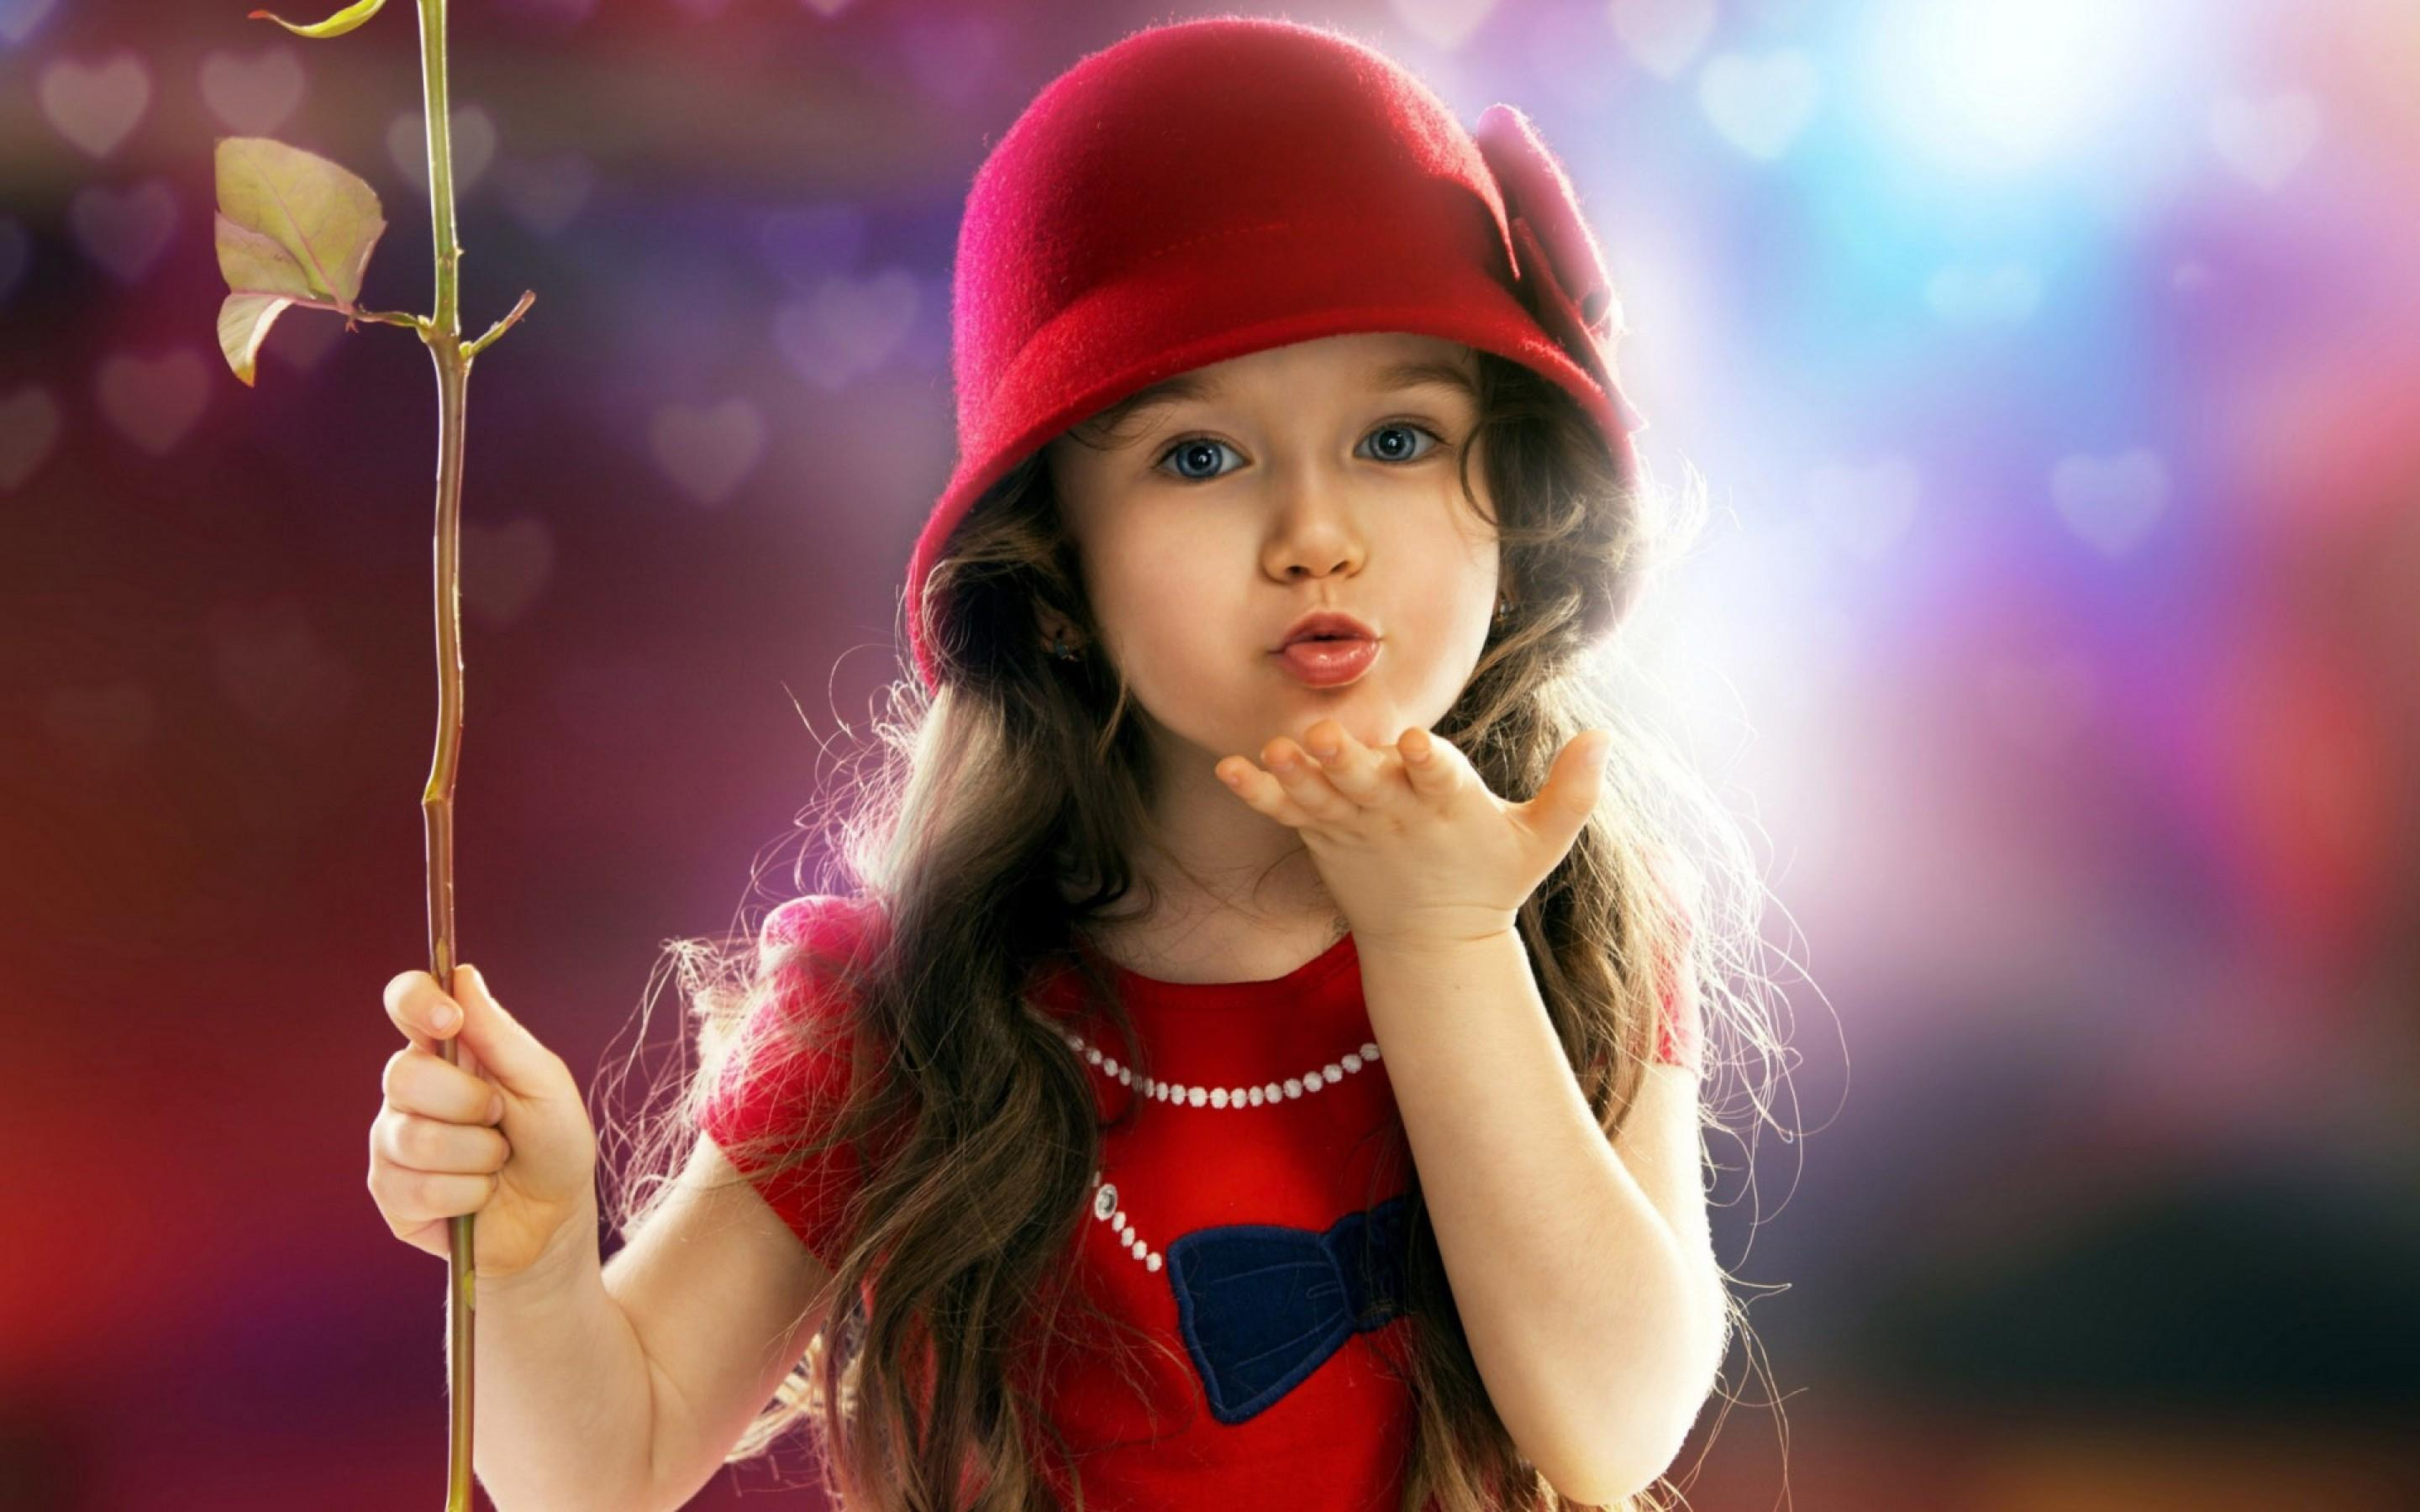 314 Little Girl HD Wallpapers | Background Images - Wallpaper Abyss